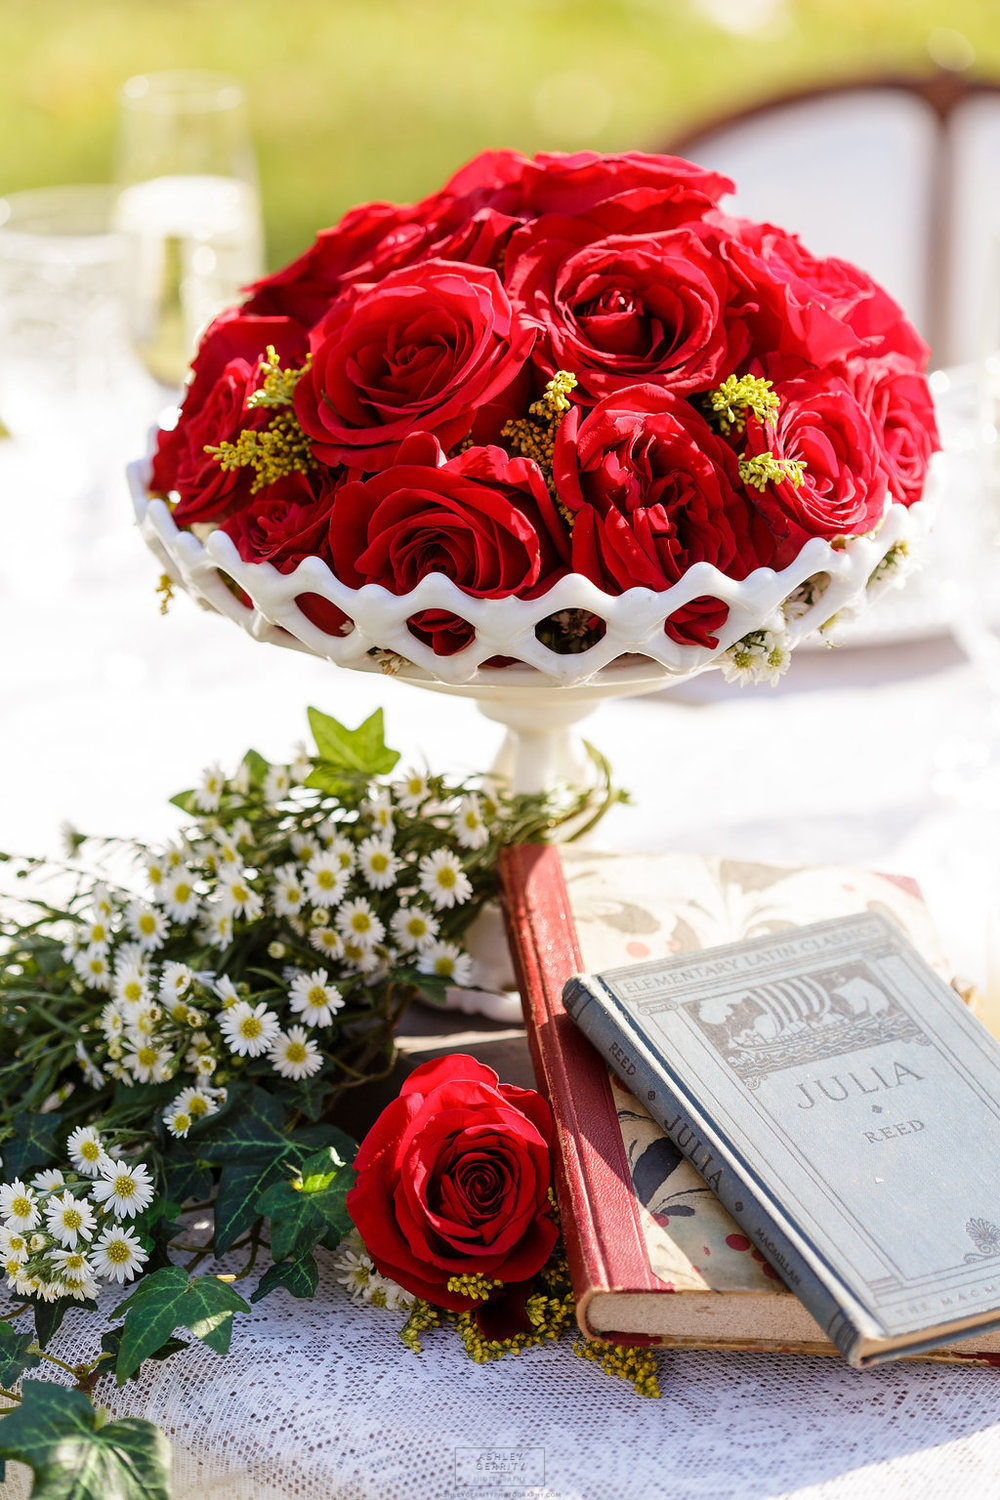 17 Red Roses Daisies Milkglass Books Centerpiece Book Lovers Wedding Gilmore Girls Inspired Wedding.jpg